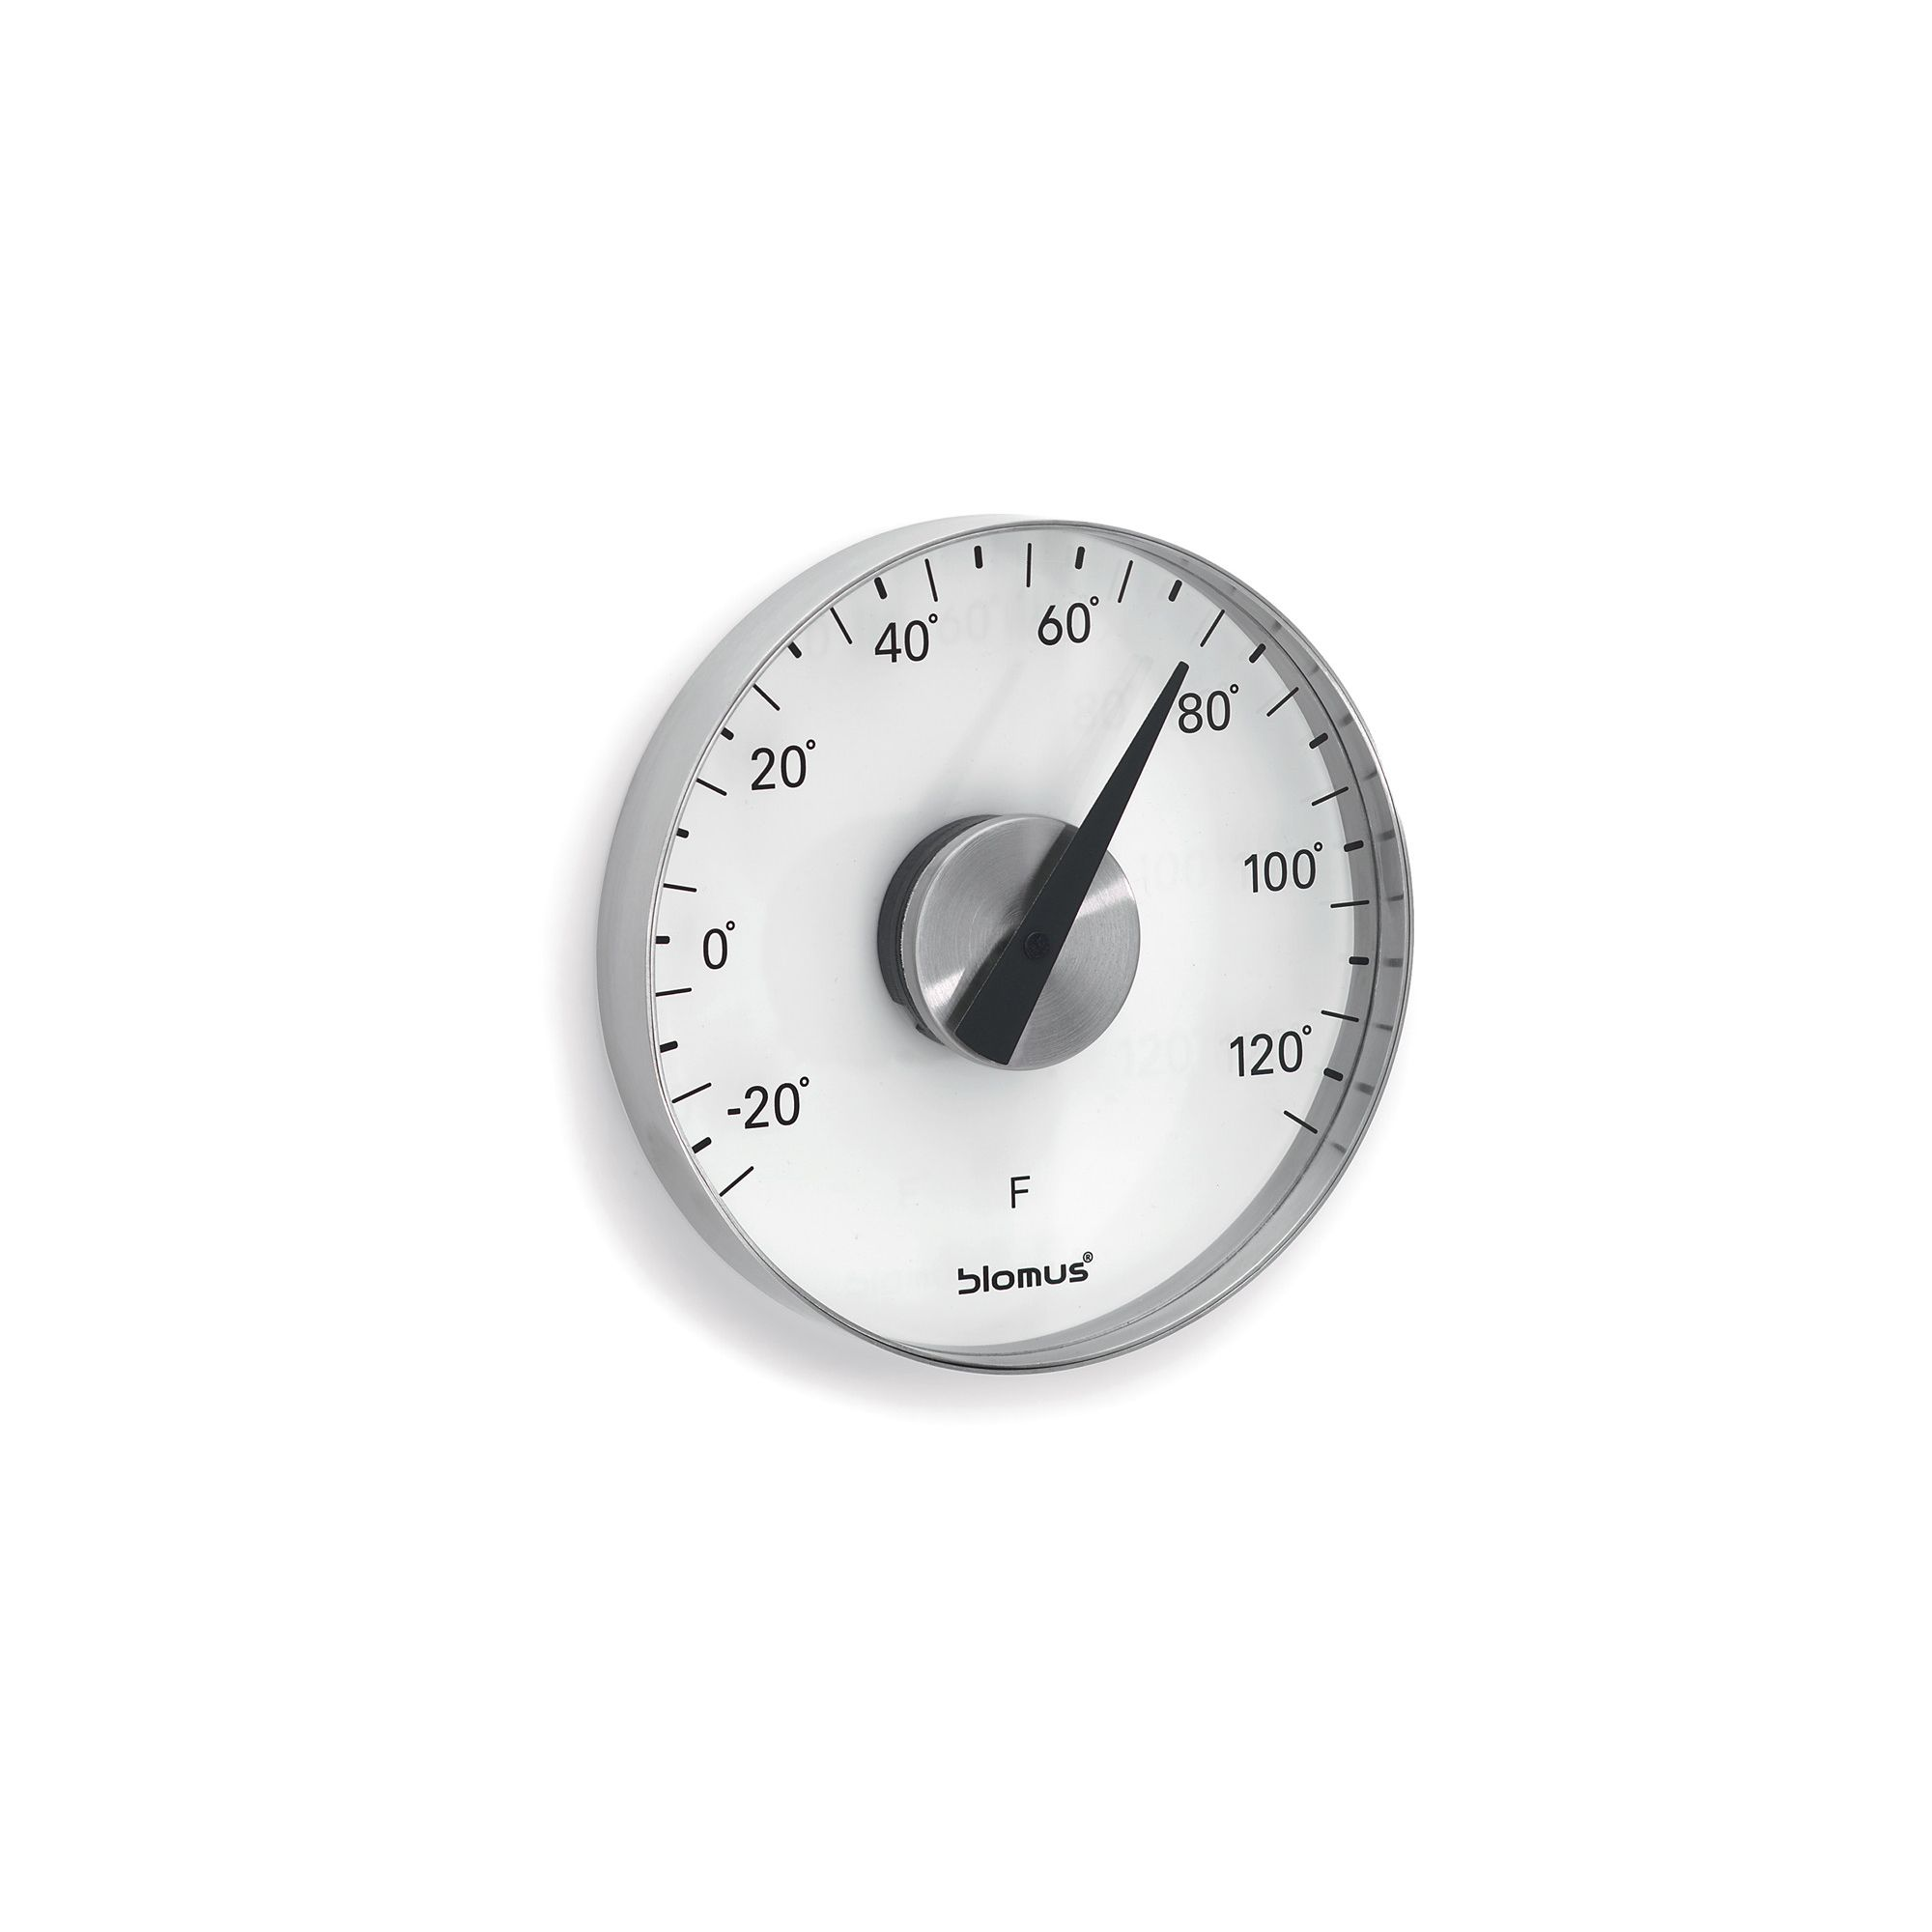 blomus thermometer blomus 65242 grado thermometer with. Black Bedroom Furniture Sets. Home Design Ideas